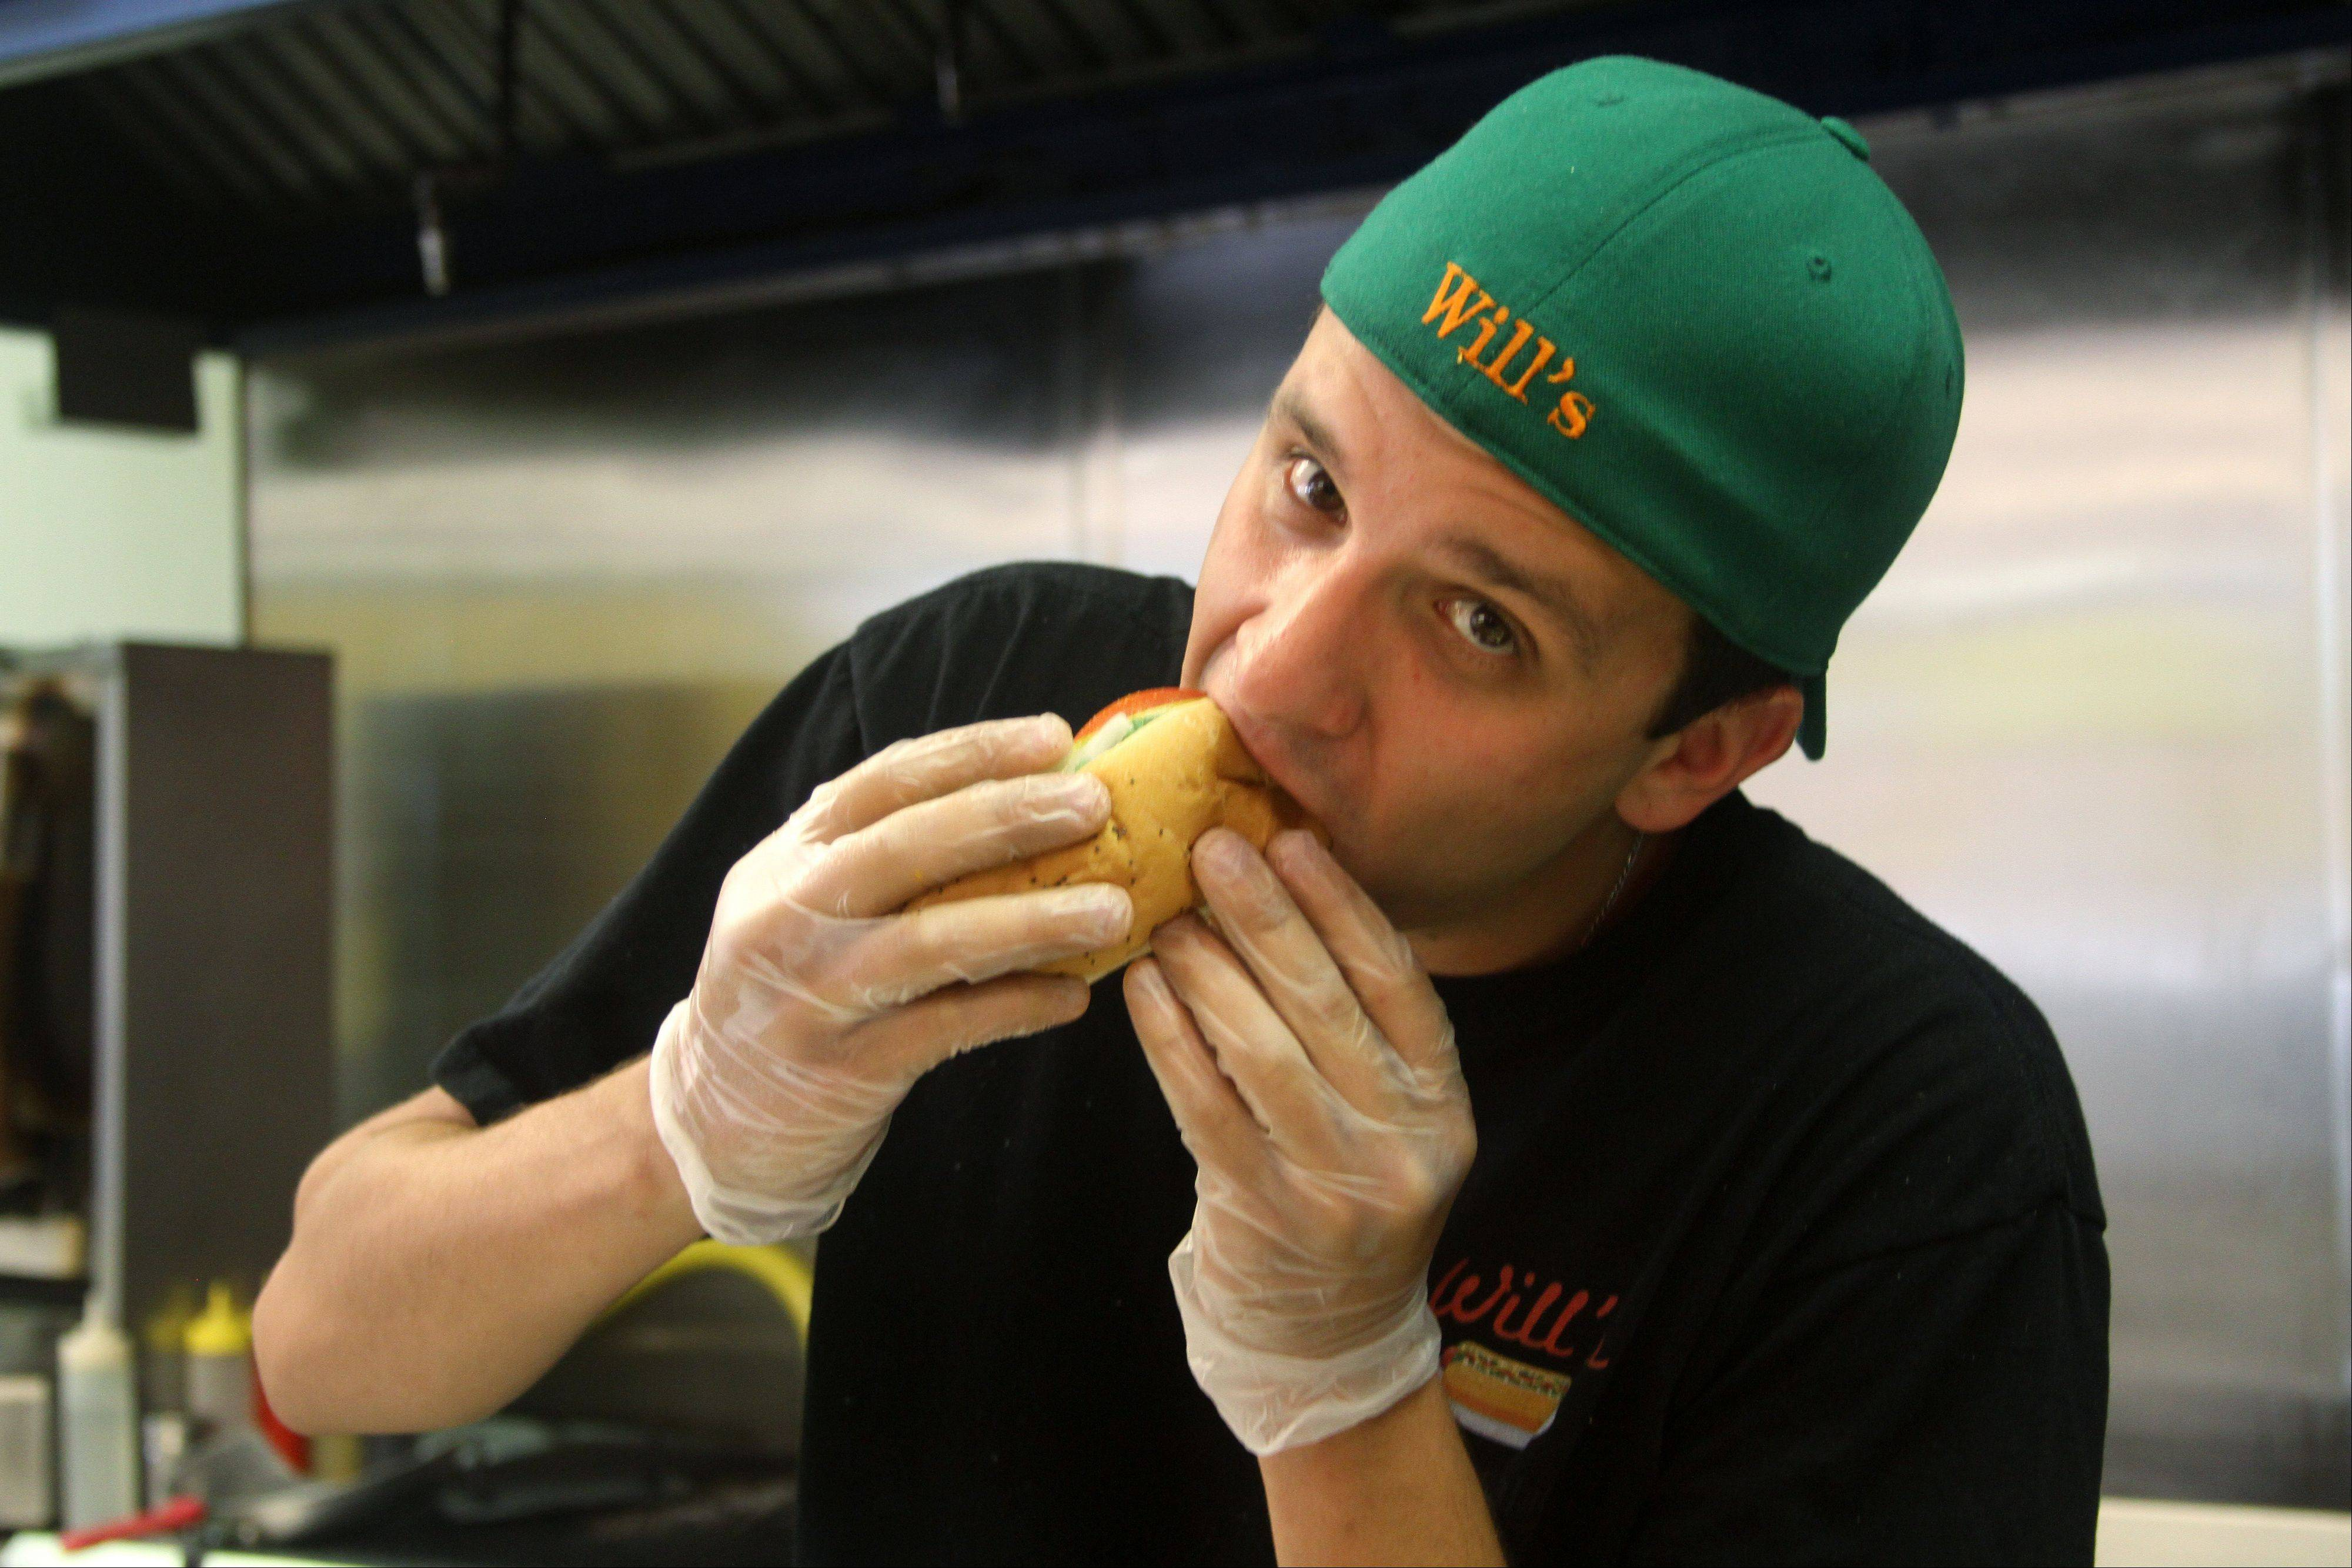 Will Amarantos, the owner of Will's Hot Dog Palace in Carol Stream, takes a bite of a hot dog from his restaurant.